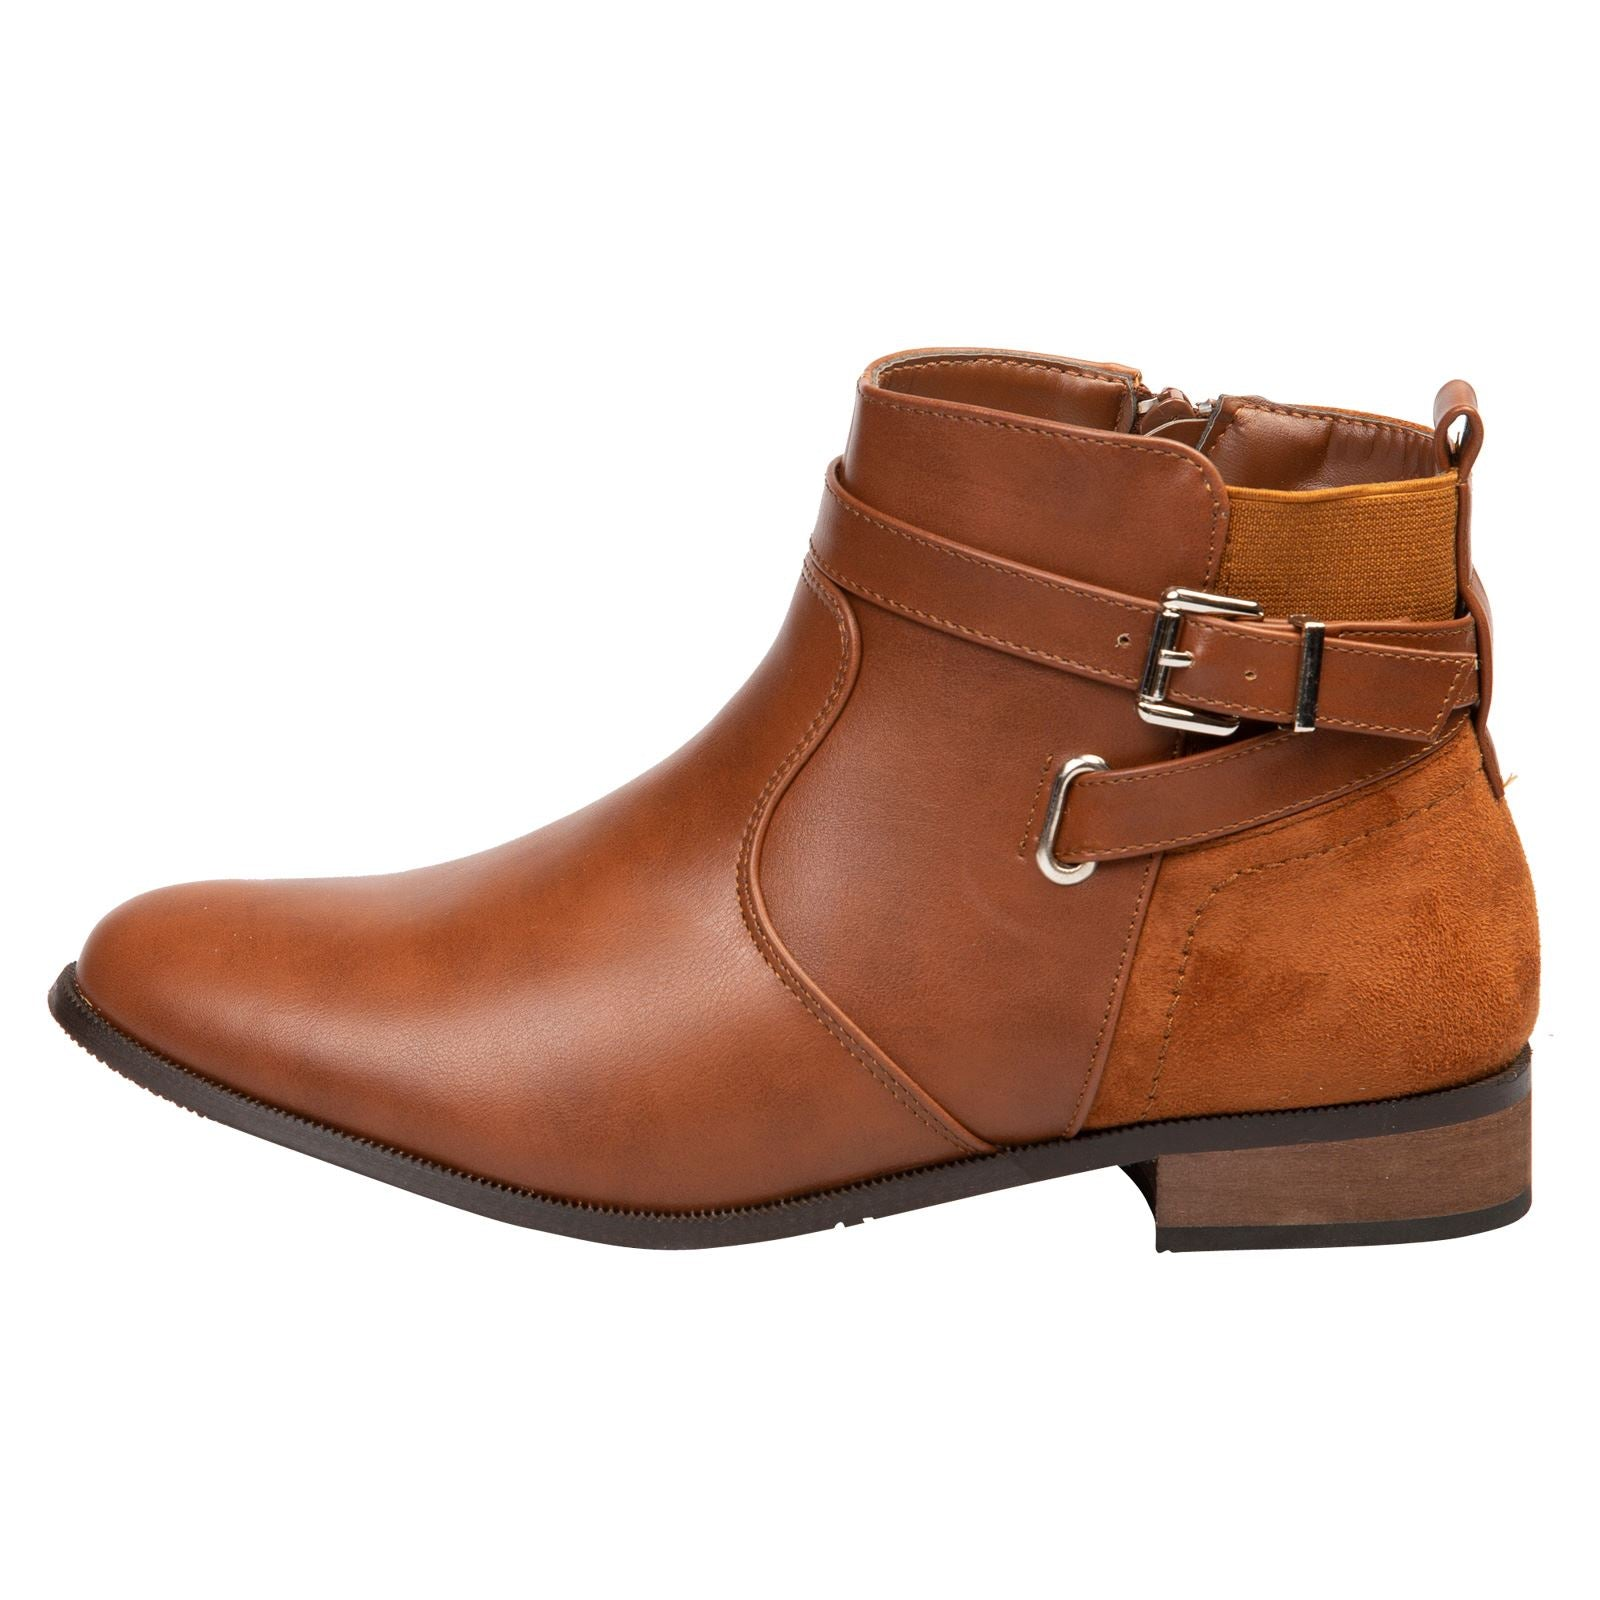 Jasmine Two-Tone Ankle Boots in Camel - Feet First Fashion